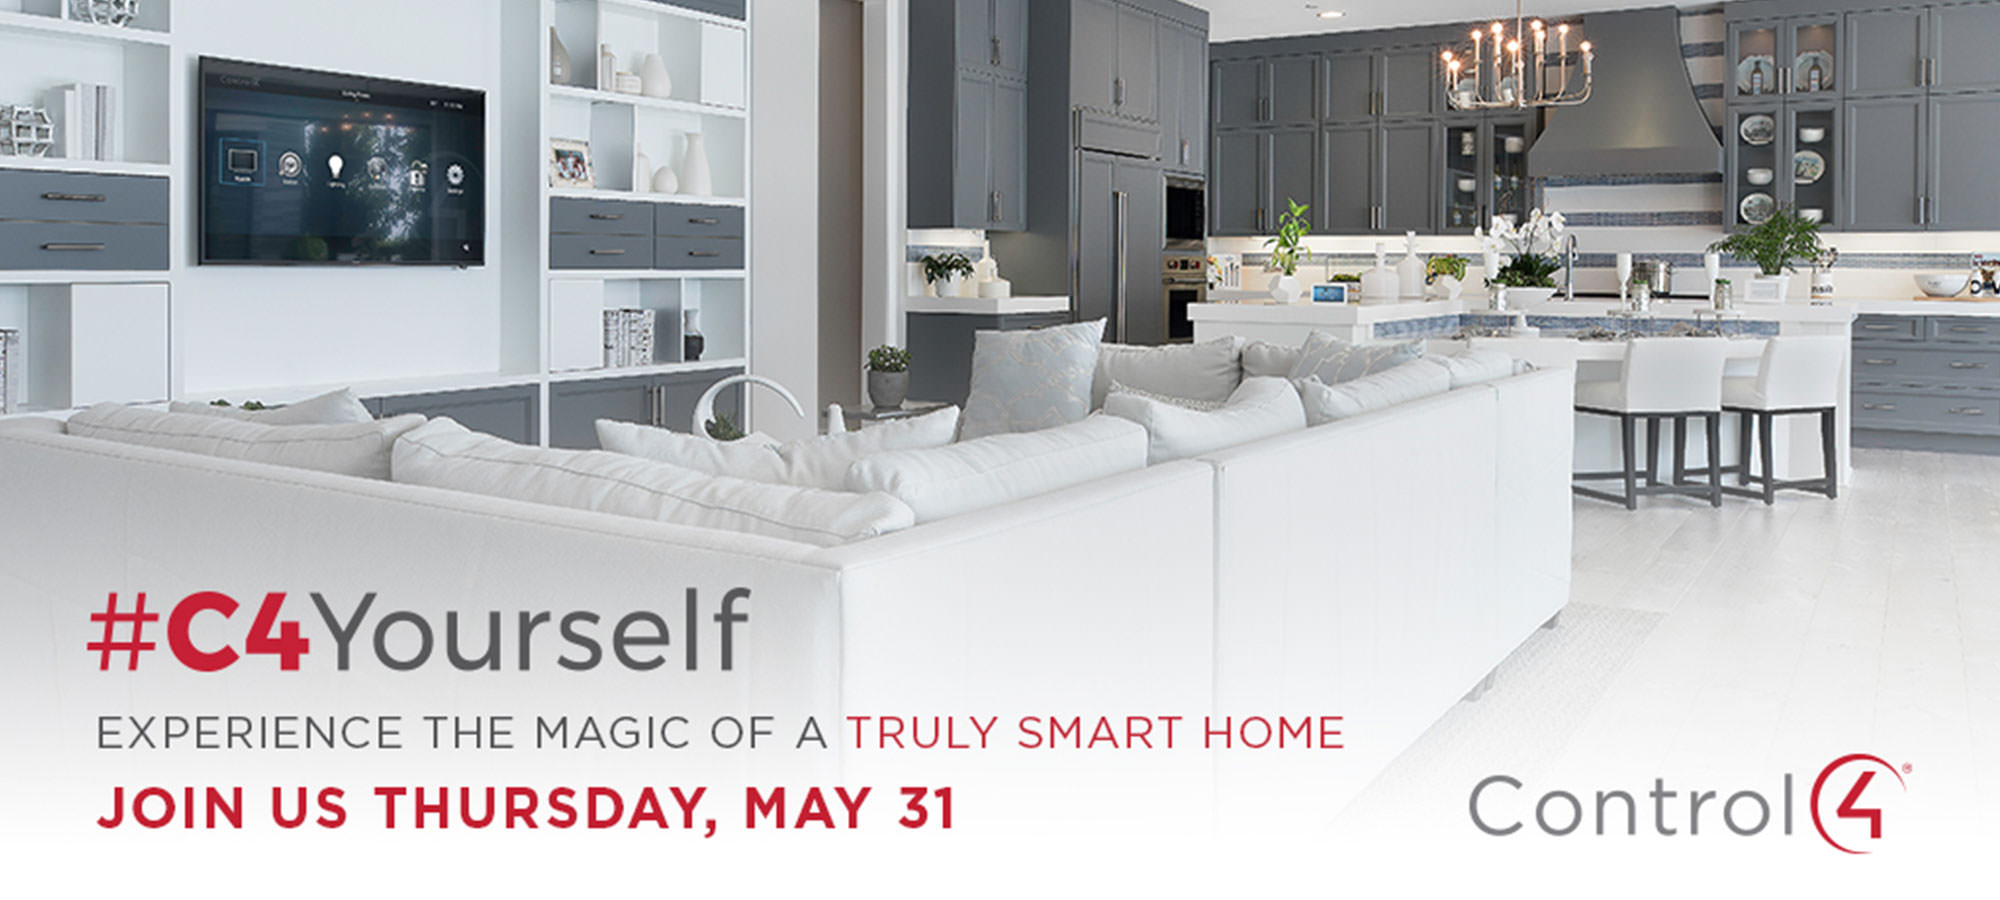 Experience the Magic of a Truly Smart Home